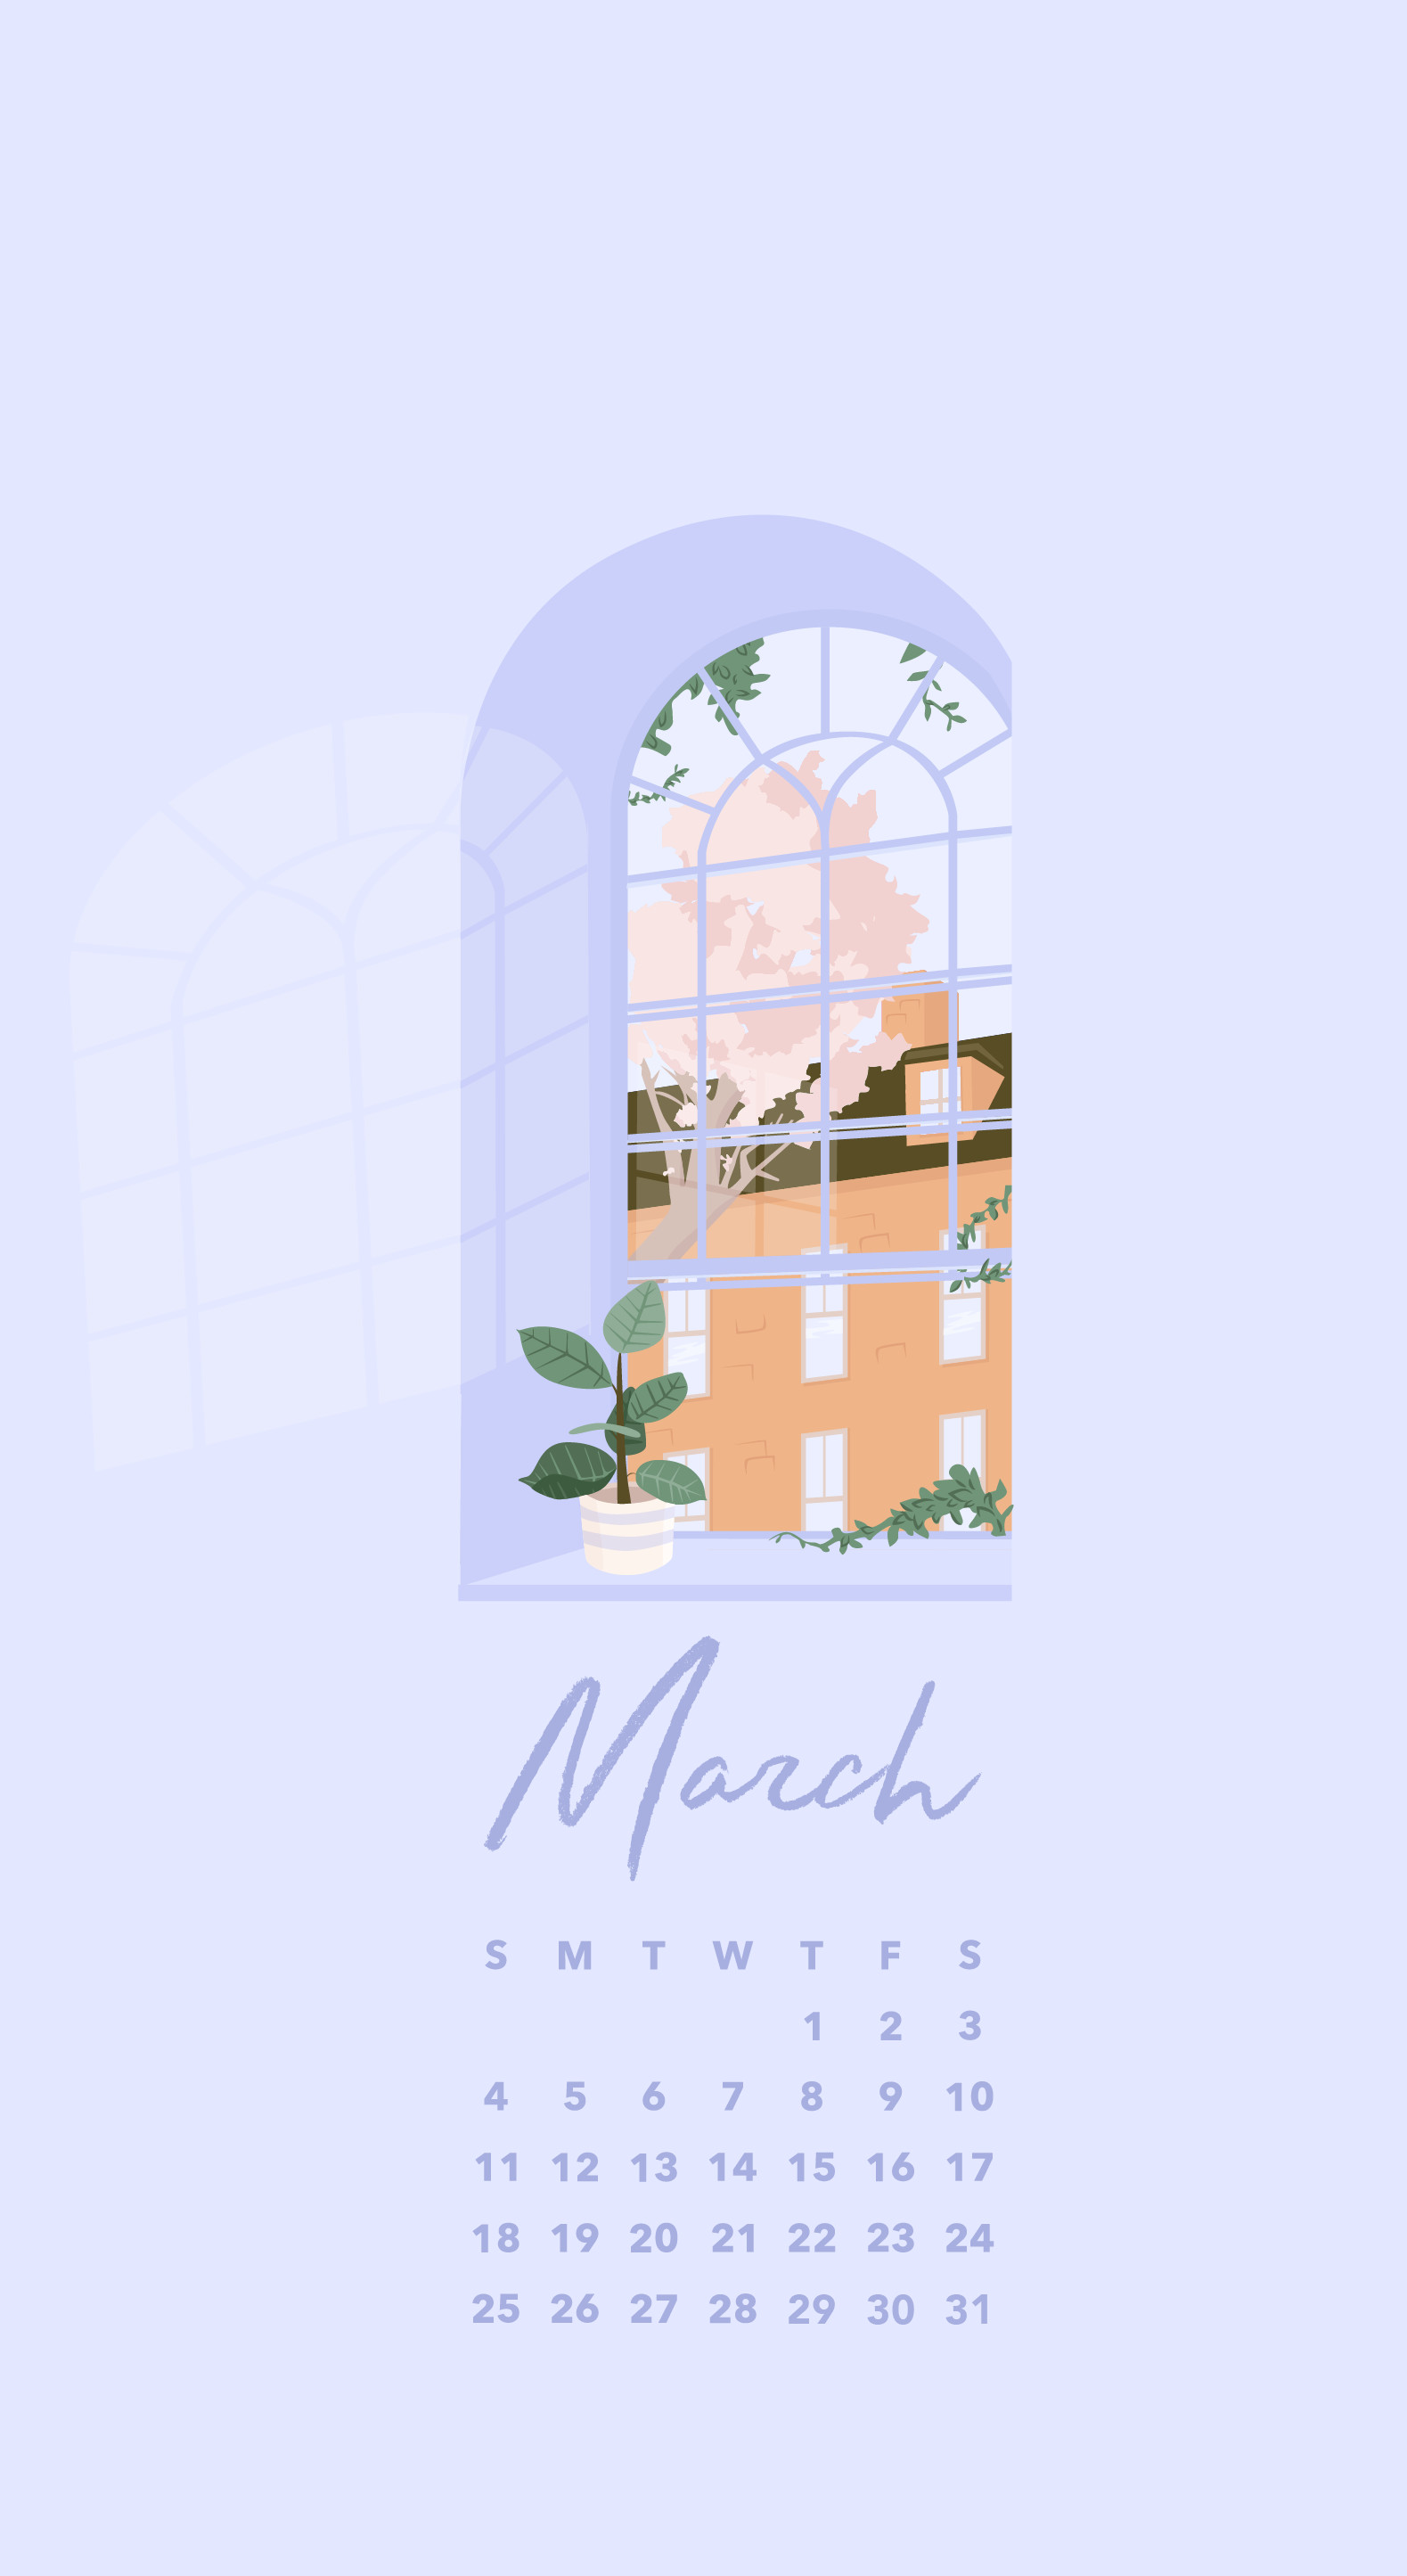 Res: 1579x2890, Download March Phone Wallpaper (With Calendar) Here